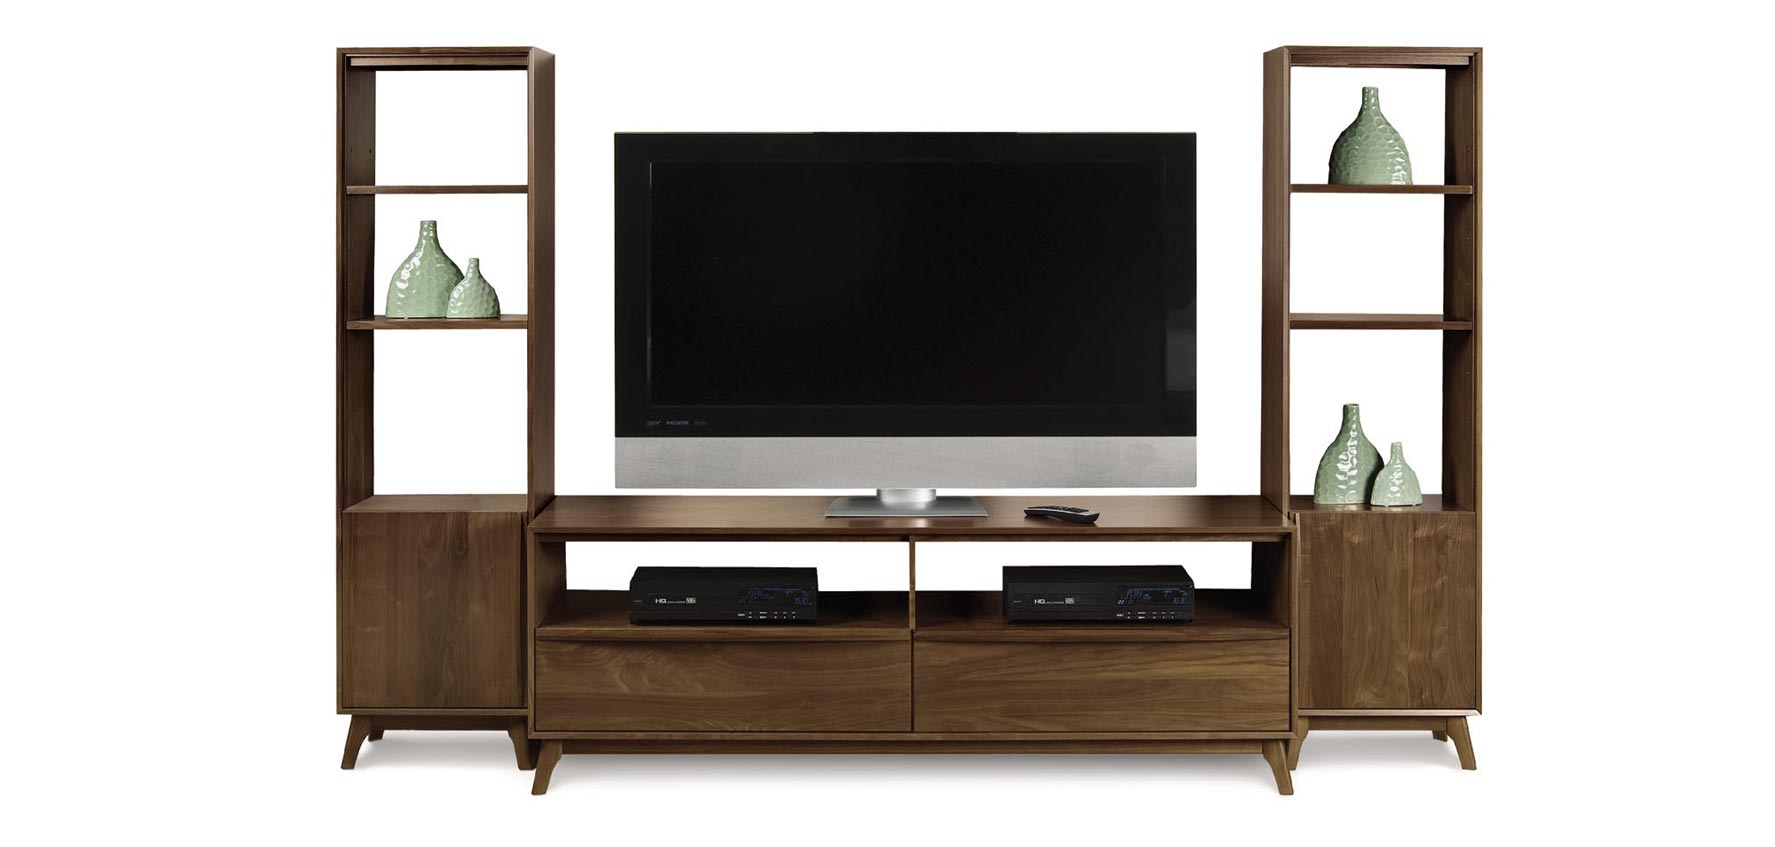 Copeland TV & Media Furniture